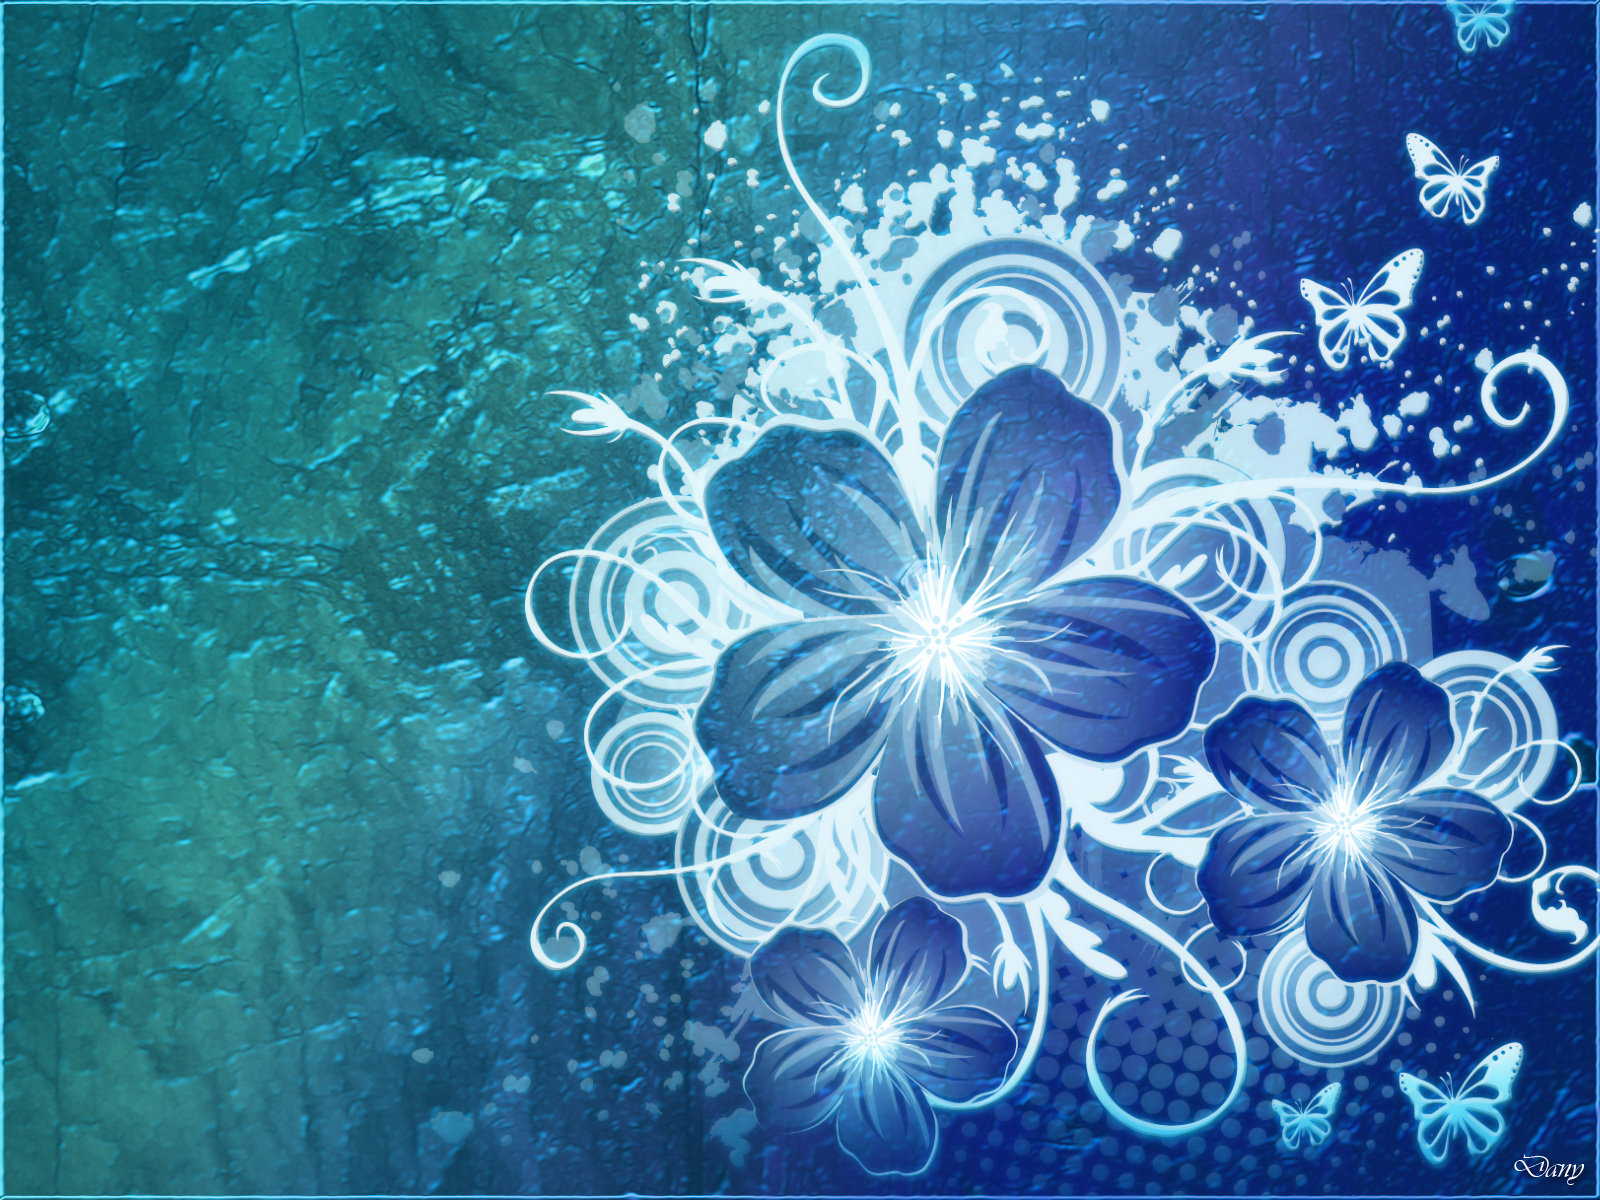 Free Download Blue Flowers Desktop Wallpaper 1600x1200 For Your